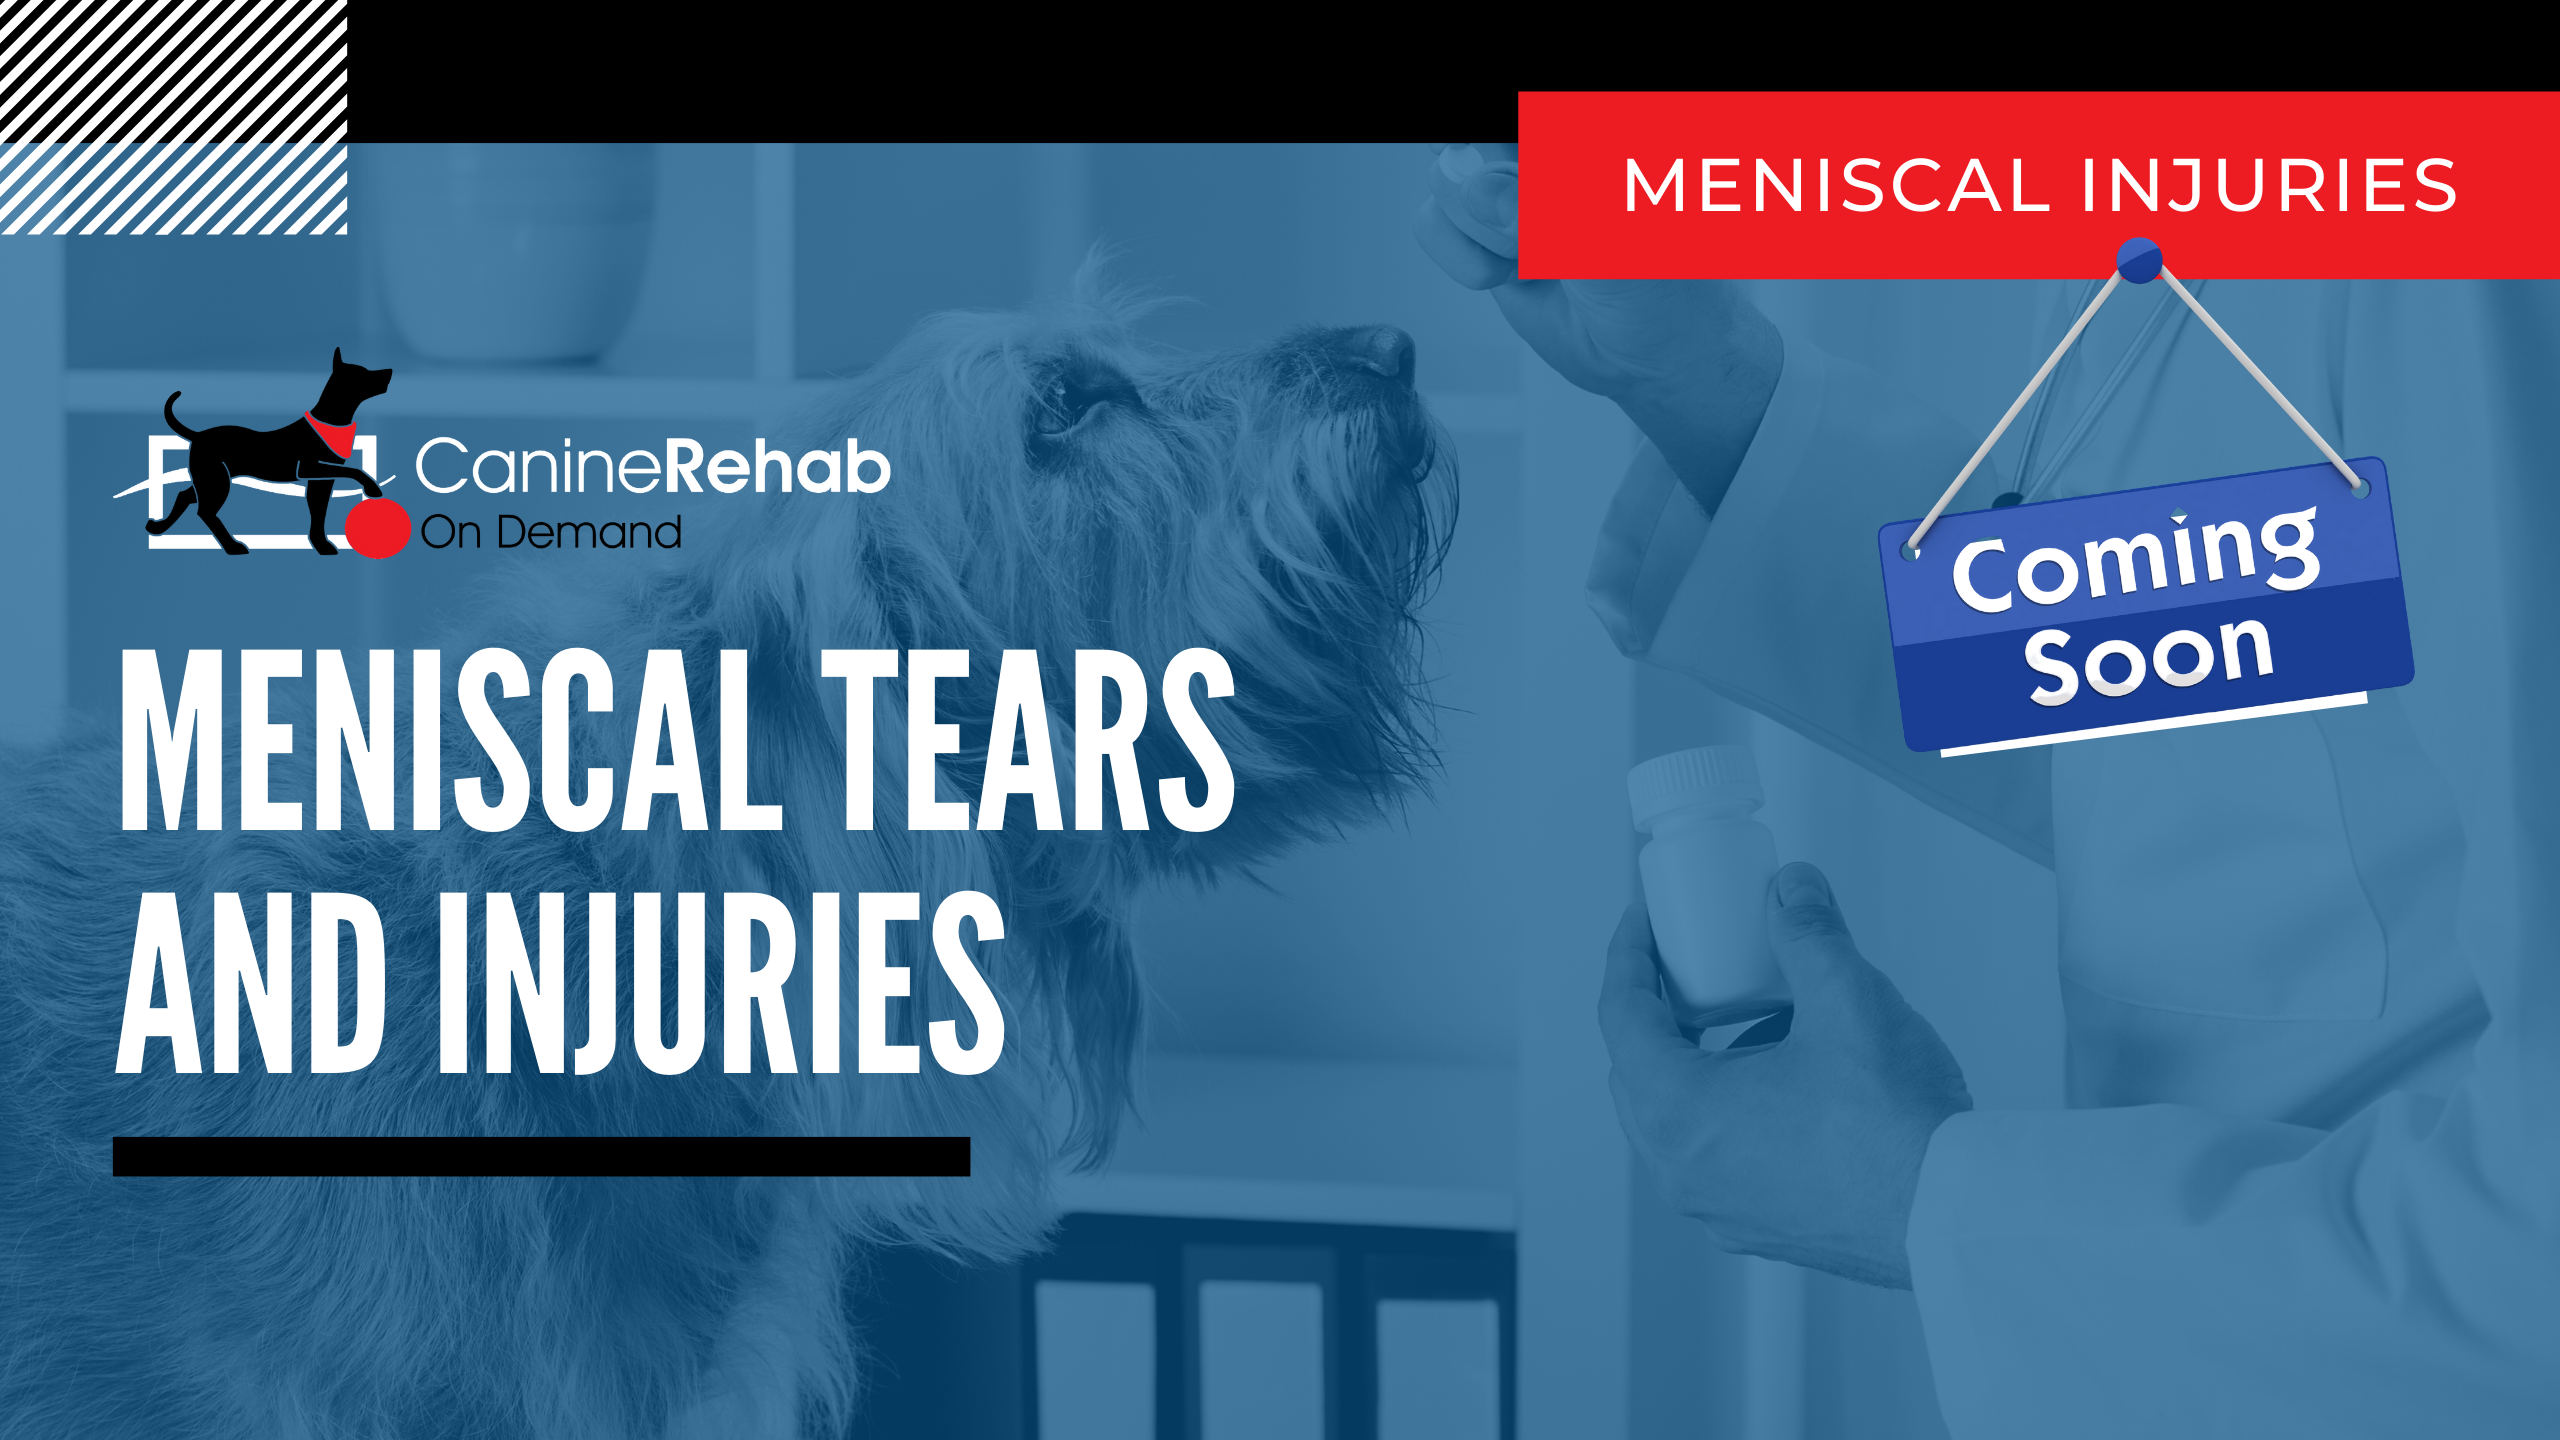 Meniscal Tears and Injuries Coming Soon